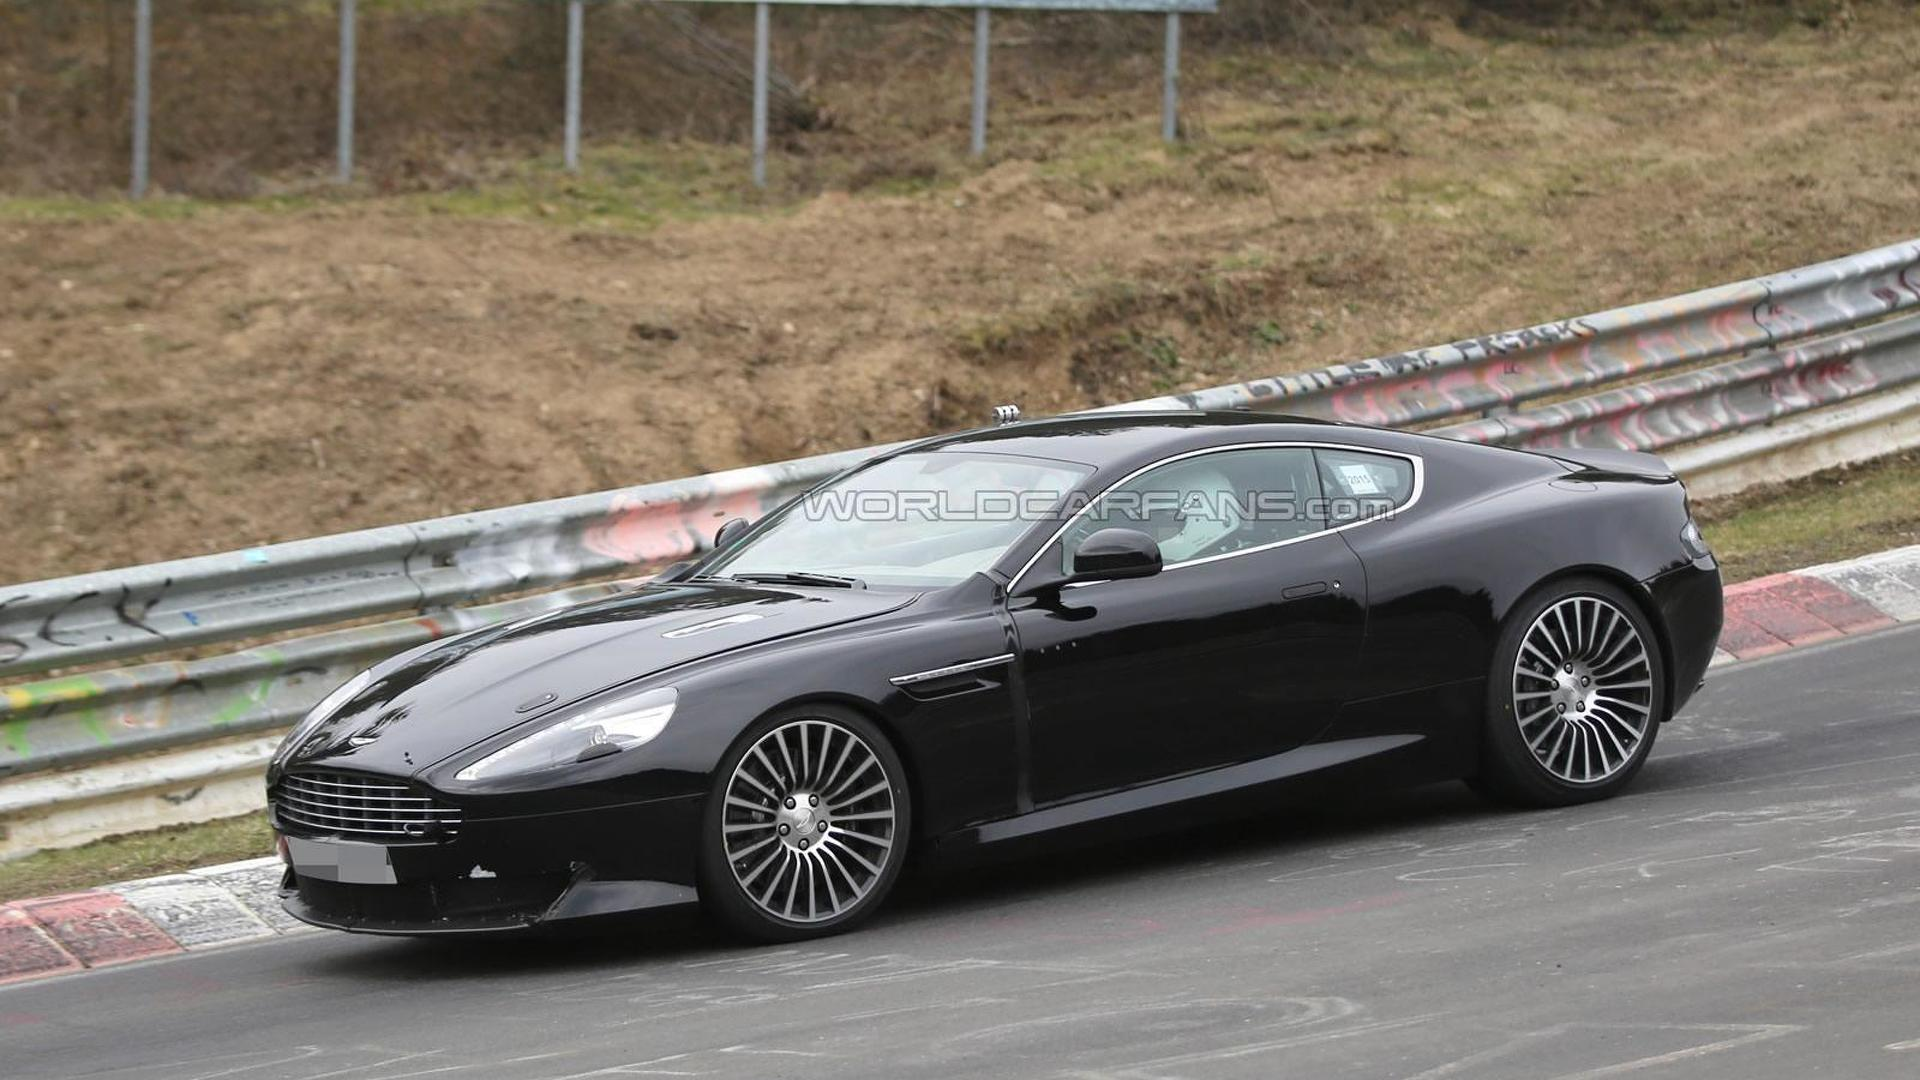 Aston Martin Db9 Successor Test Mule Spied For The First Time 22 Pics